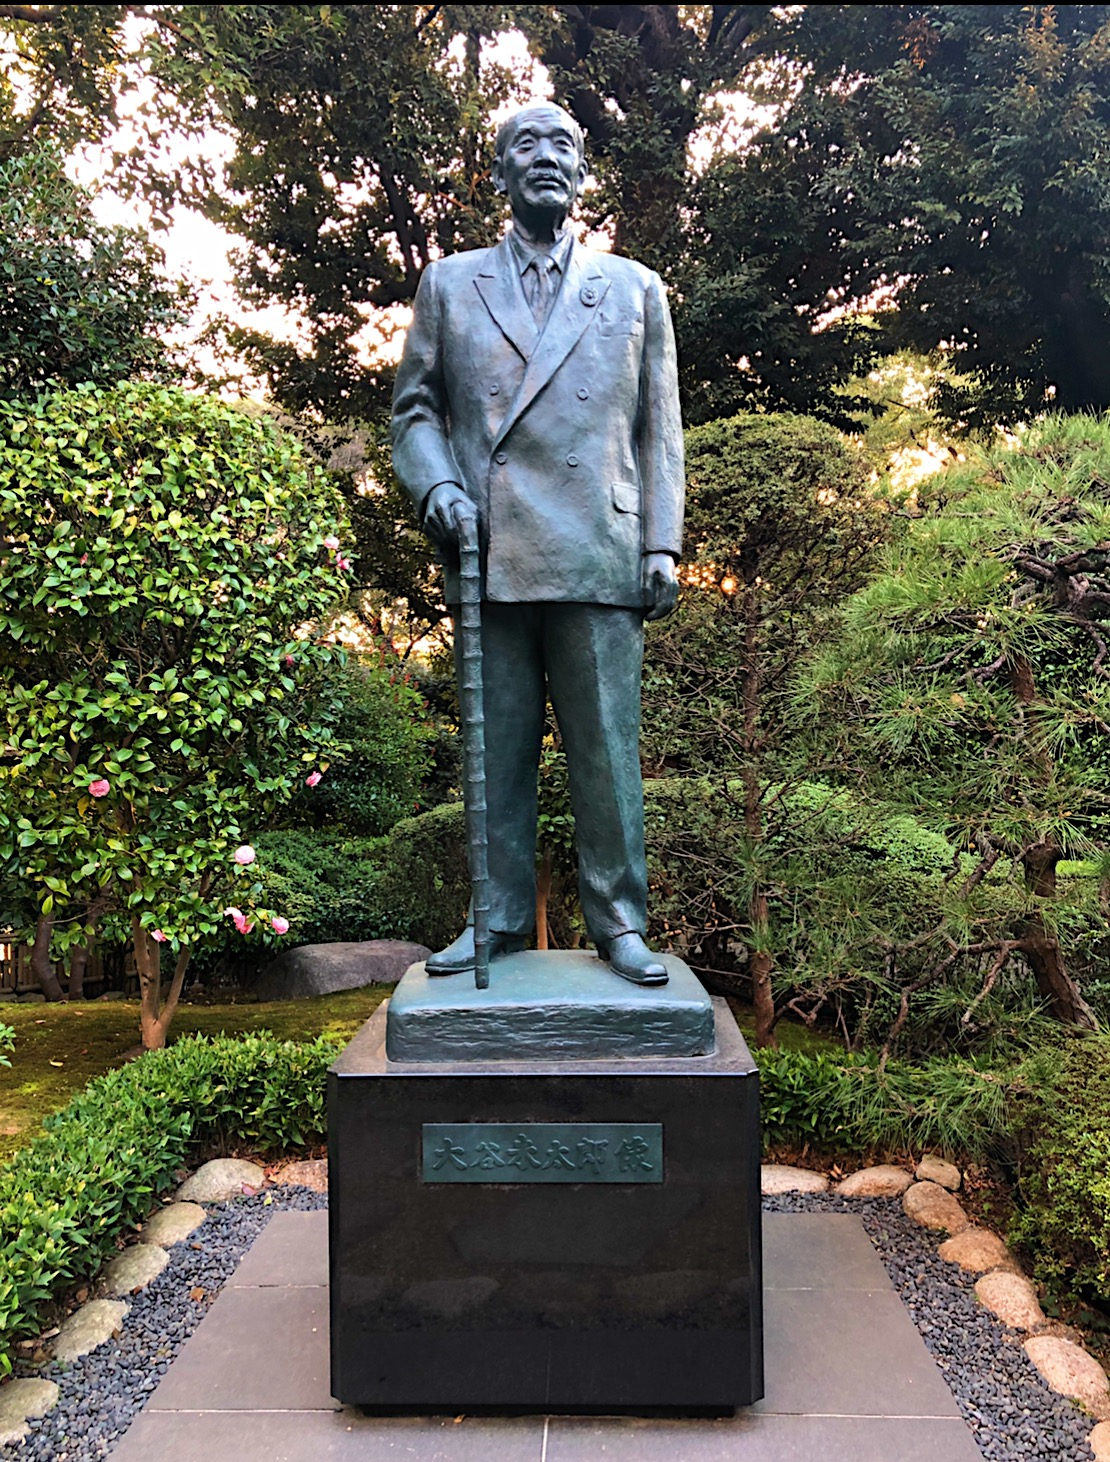 Yonetaro Otani, Founder of the Hotel New Otani, The Main in Tokyo